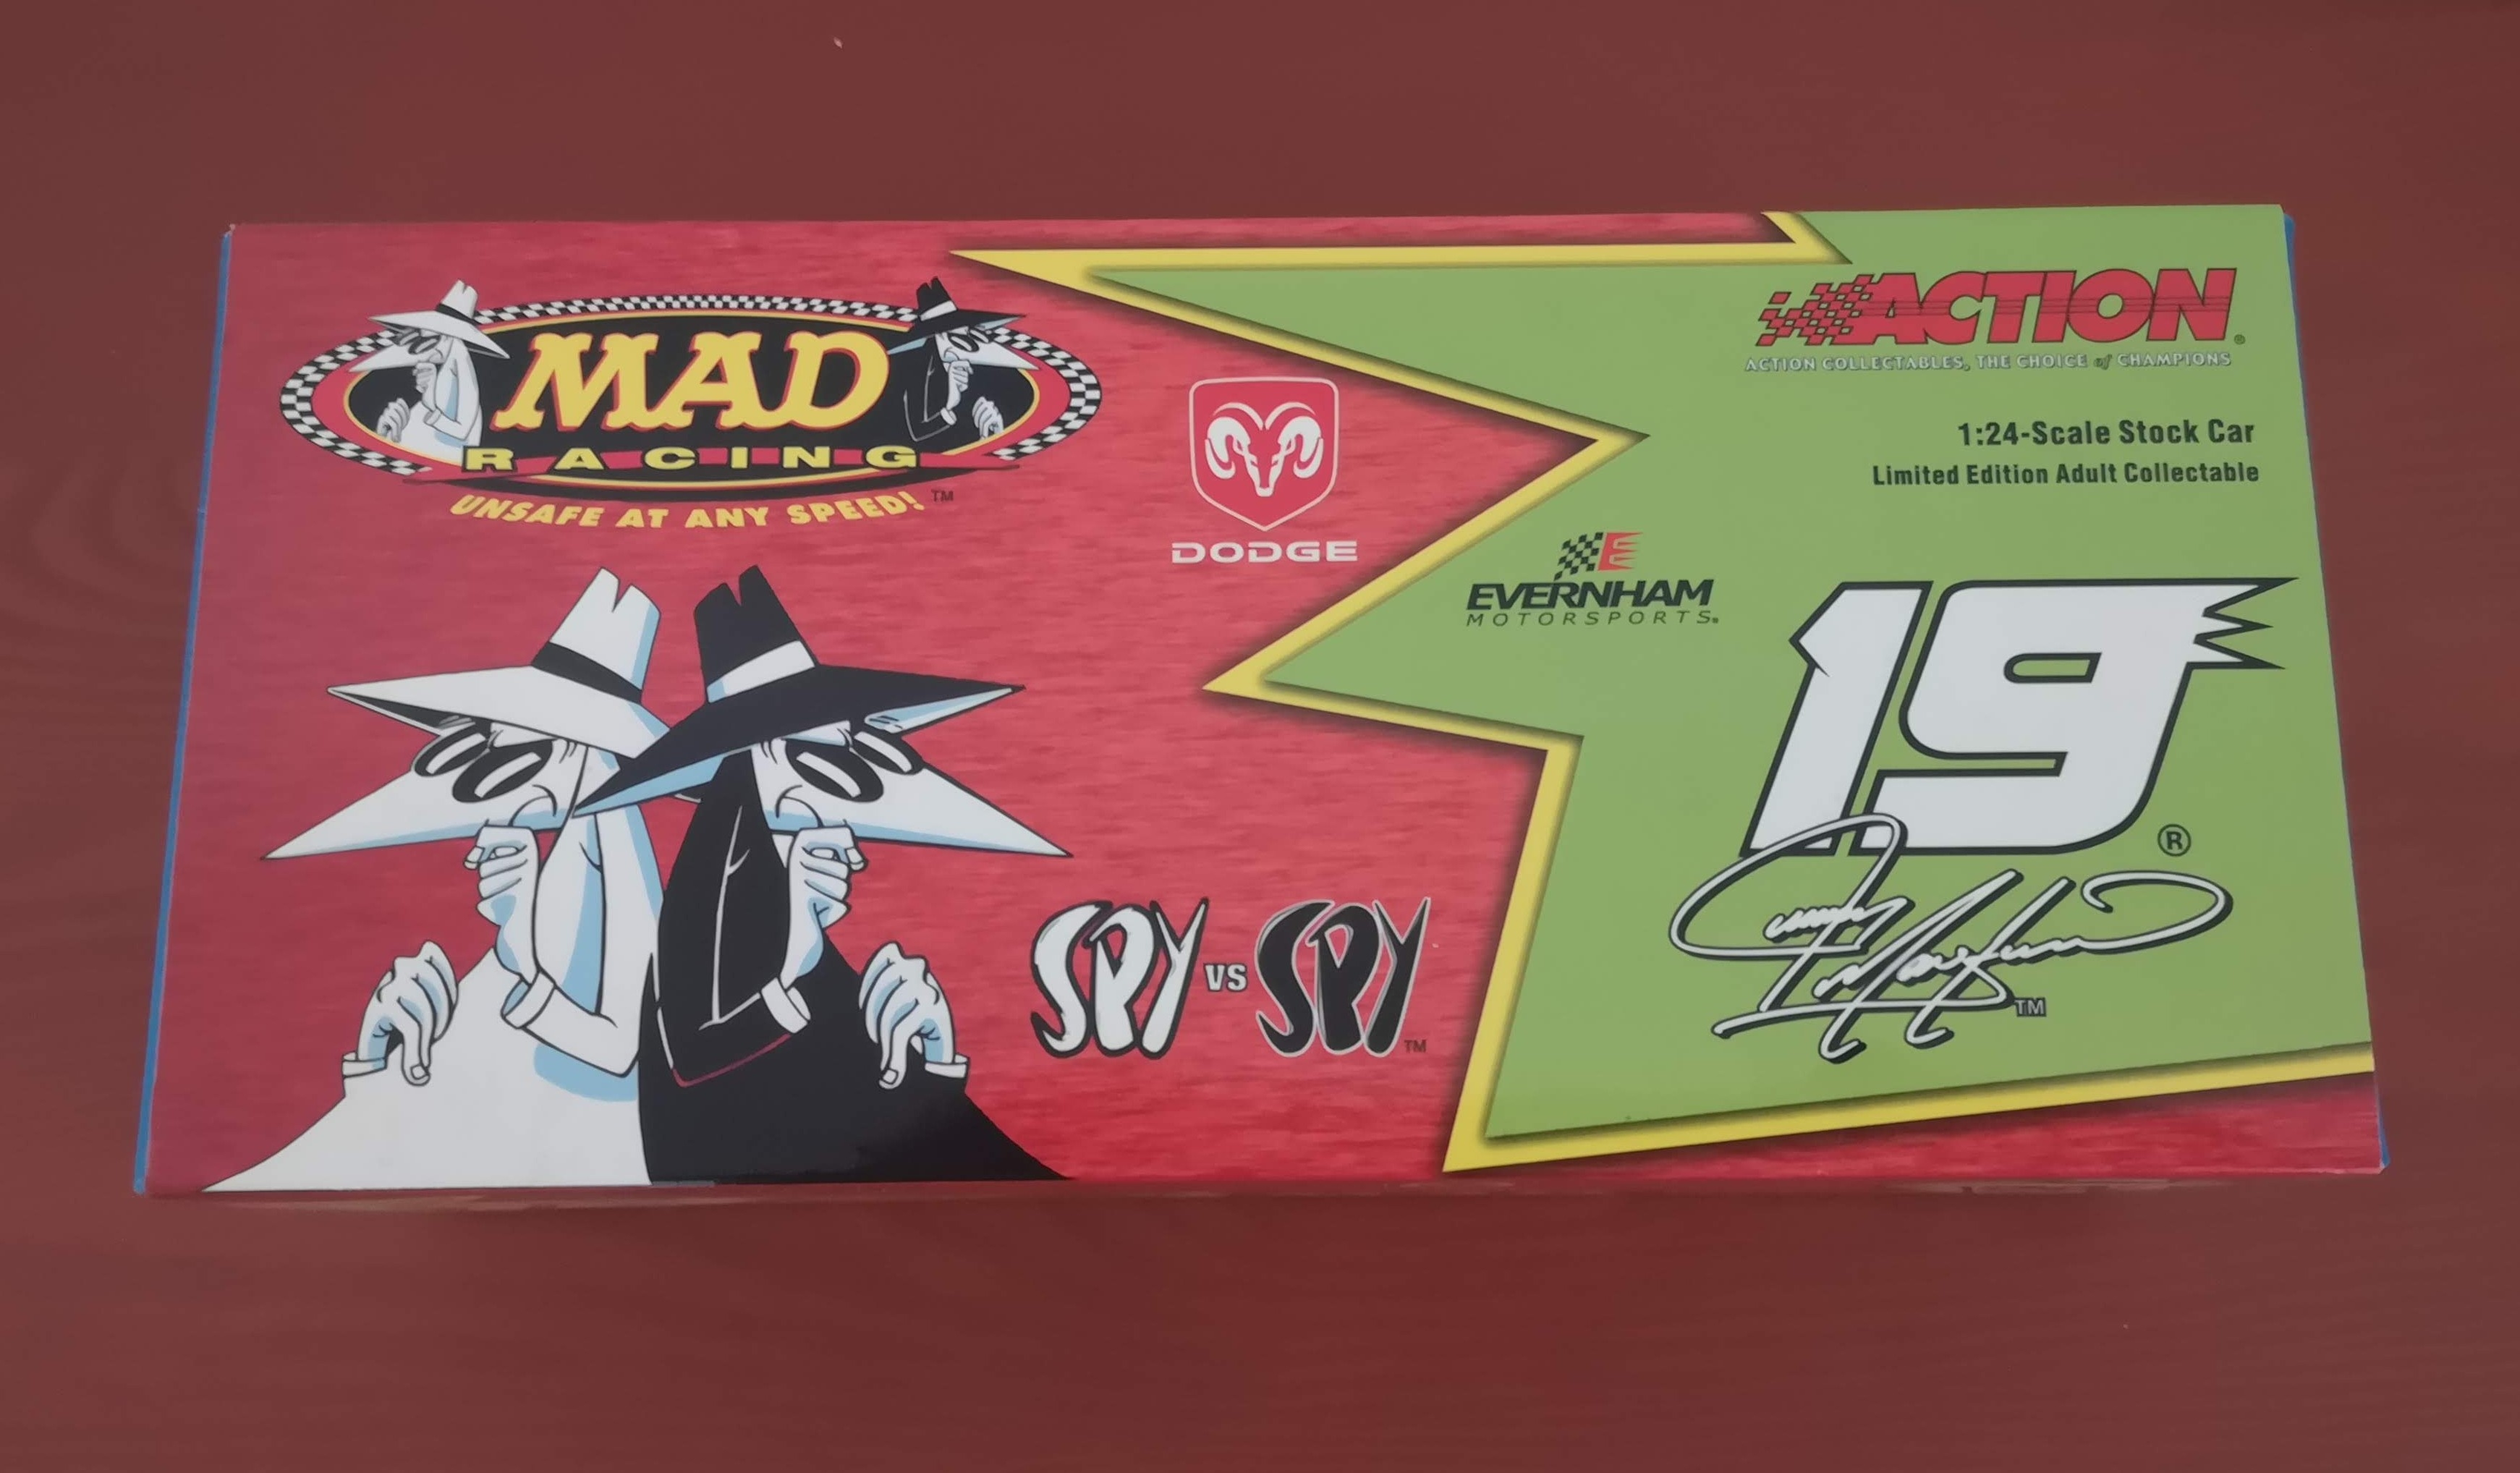 Jeremy Mayfield ACTION 1/24 Dodge Dealers #19 MAD Racing Spy vs Spy • USA